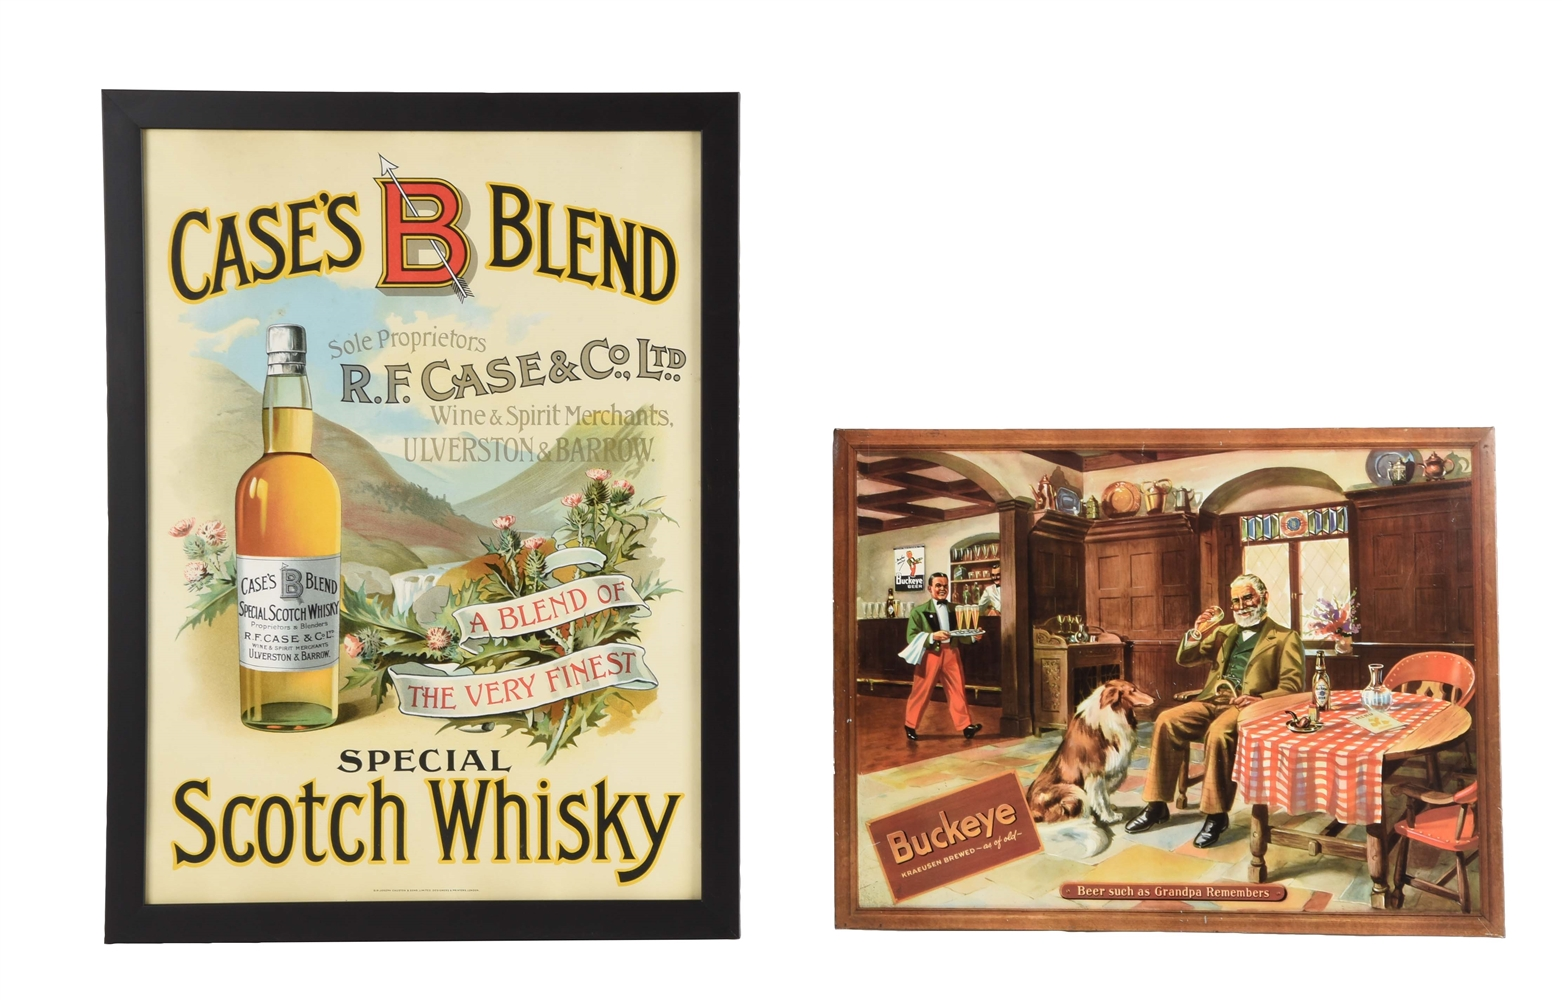 Lot Of 2: Buckeye Beer & Casess Blend Whisky Signs.